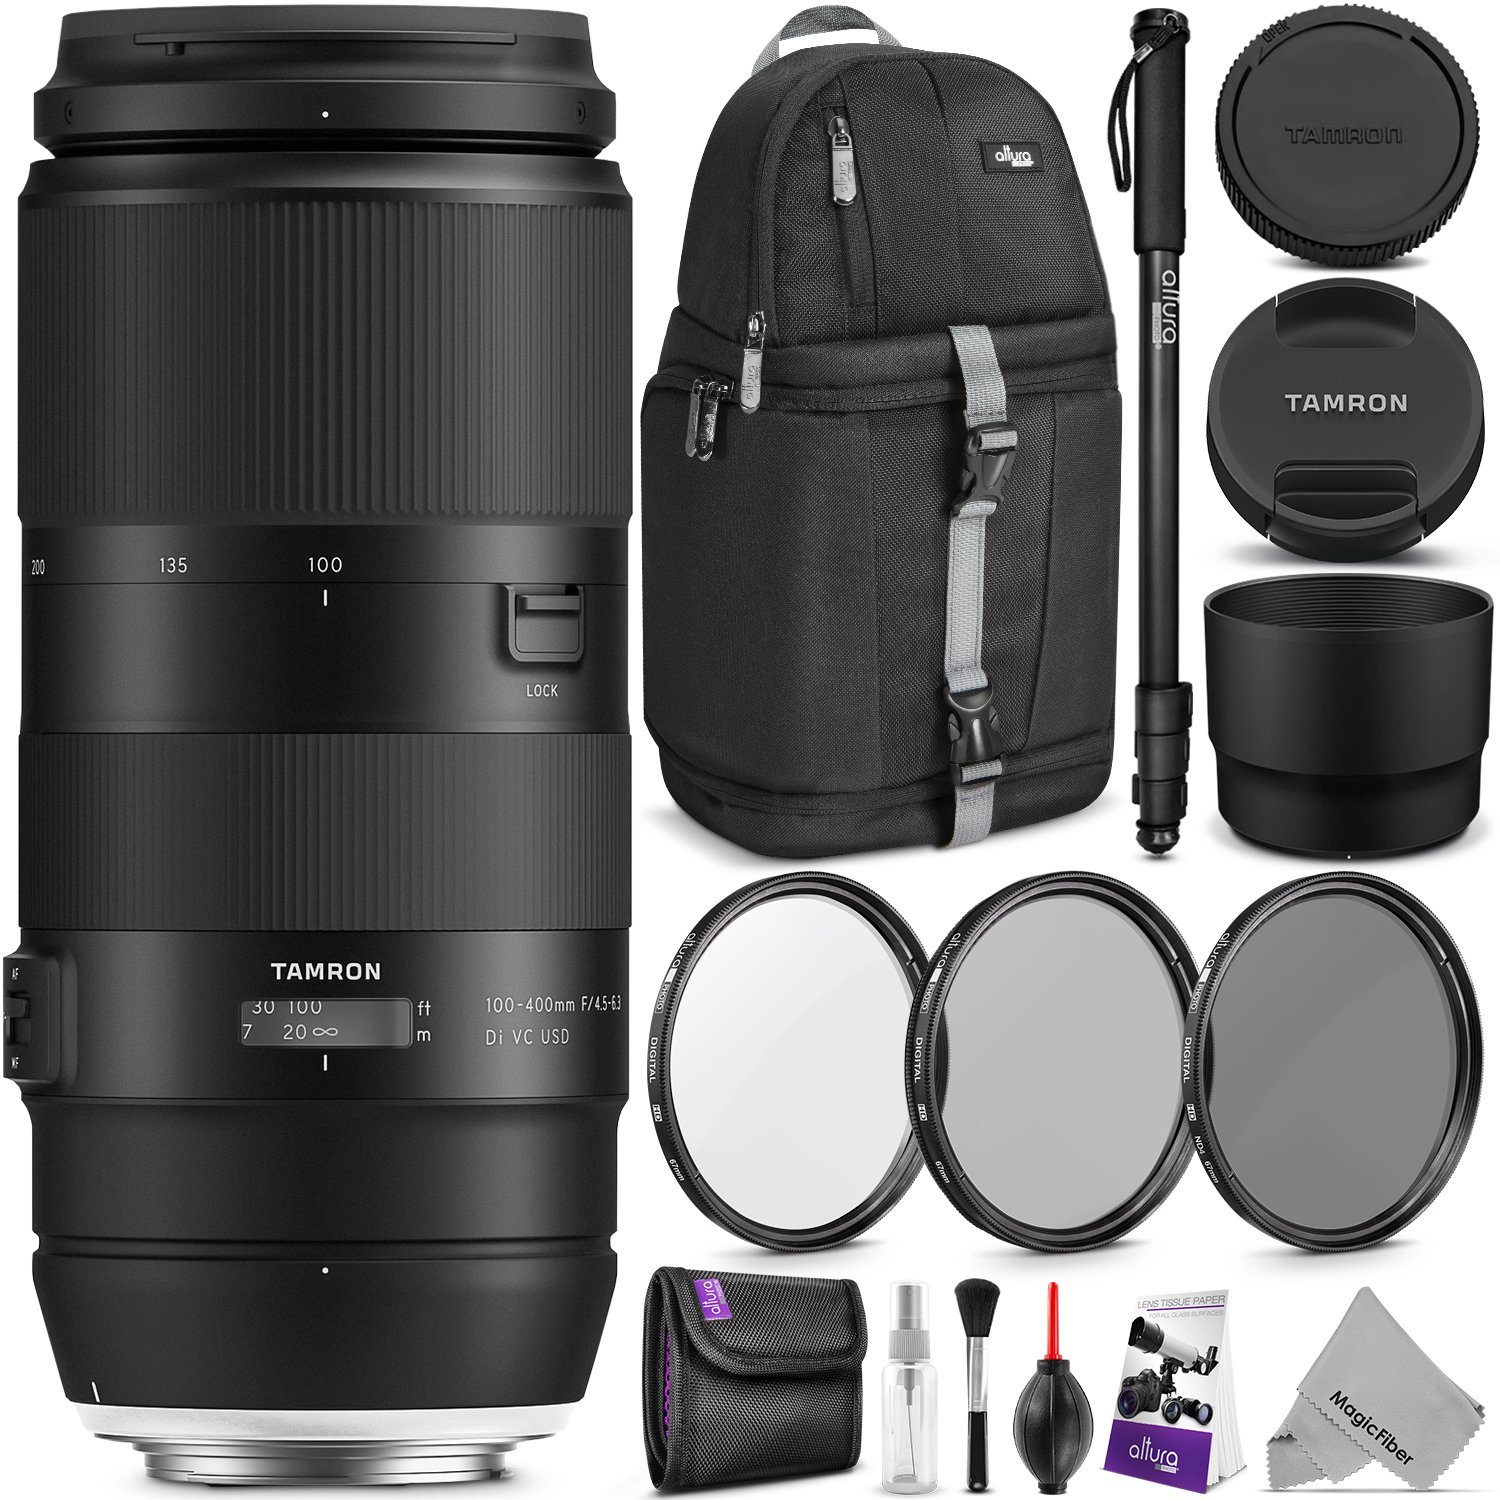 Tamron 100-400mm f/4.5-6.3 Di VC USD Lens for Canon EF w/Advanced Photo and Travel Bundle (Tamron 6 Year Limited USA Warranty) by Tamron (Image #1)